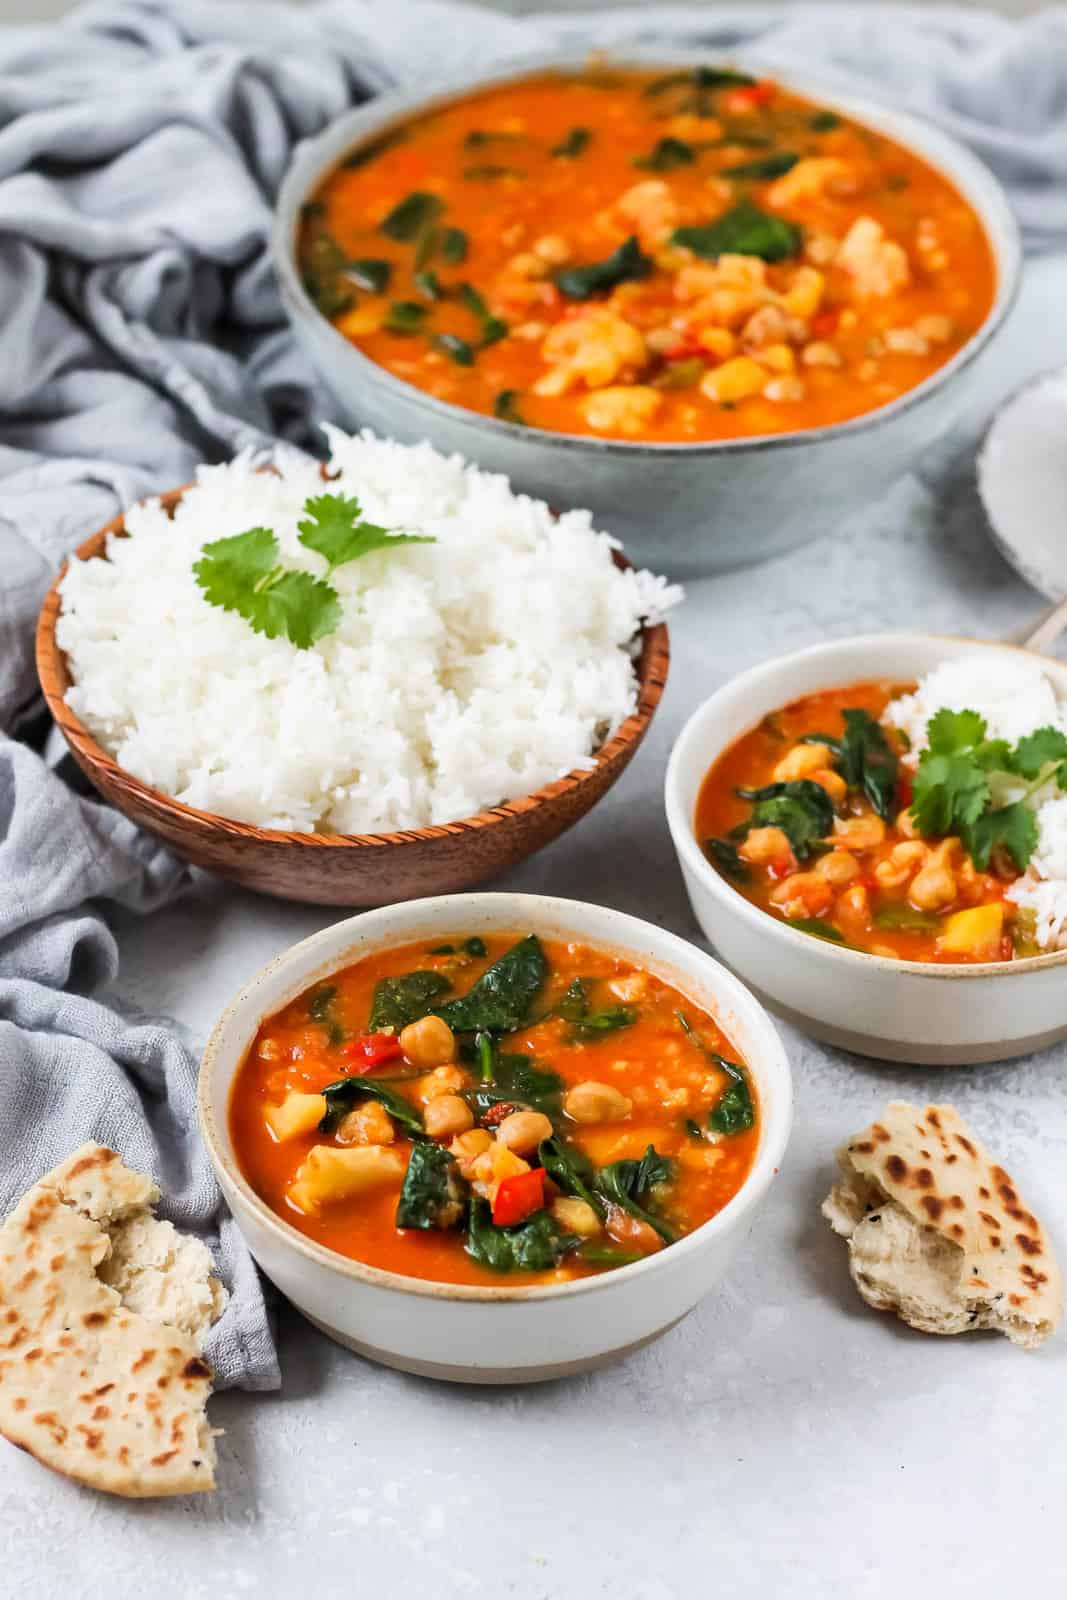 a bowl of chickpea curry on a grey background with rice and torn naan bread